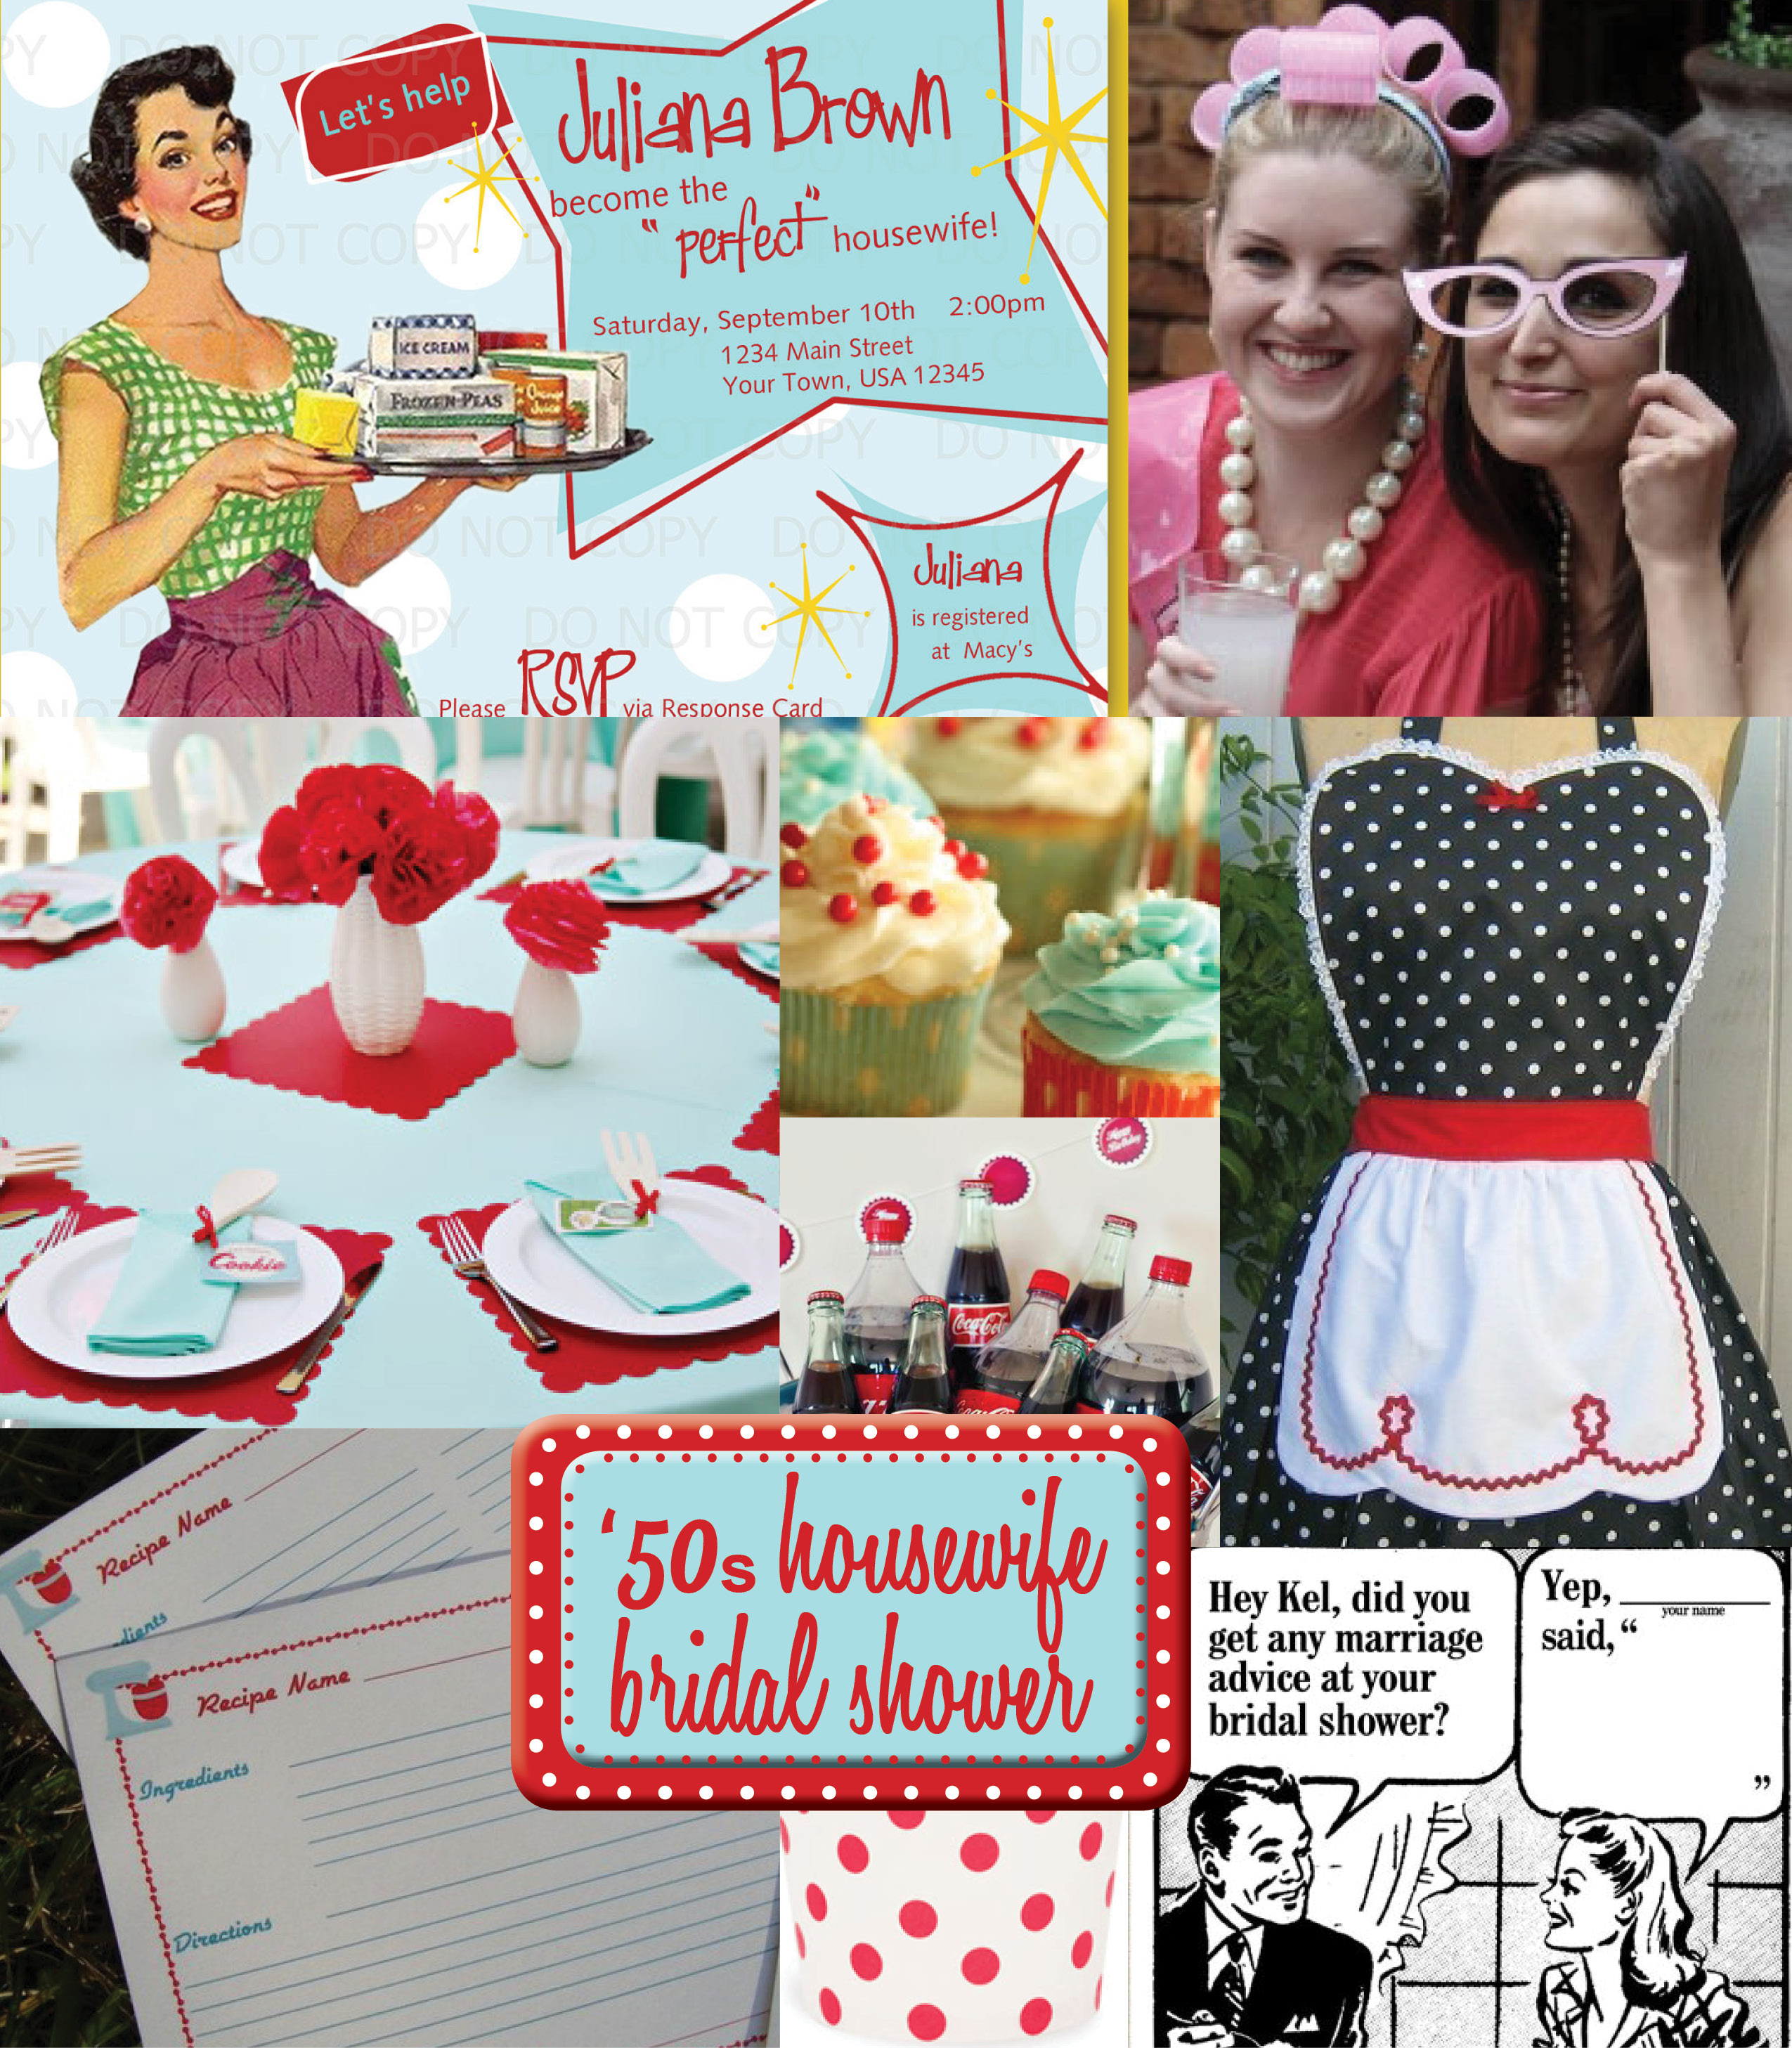 Iw 50s Housewife Bridal Shower Ideas Perpetually Daydreaming